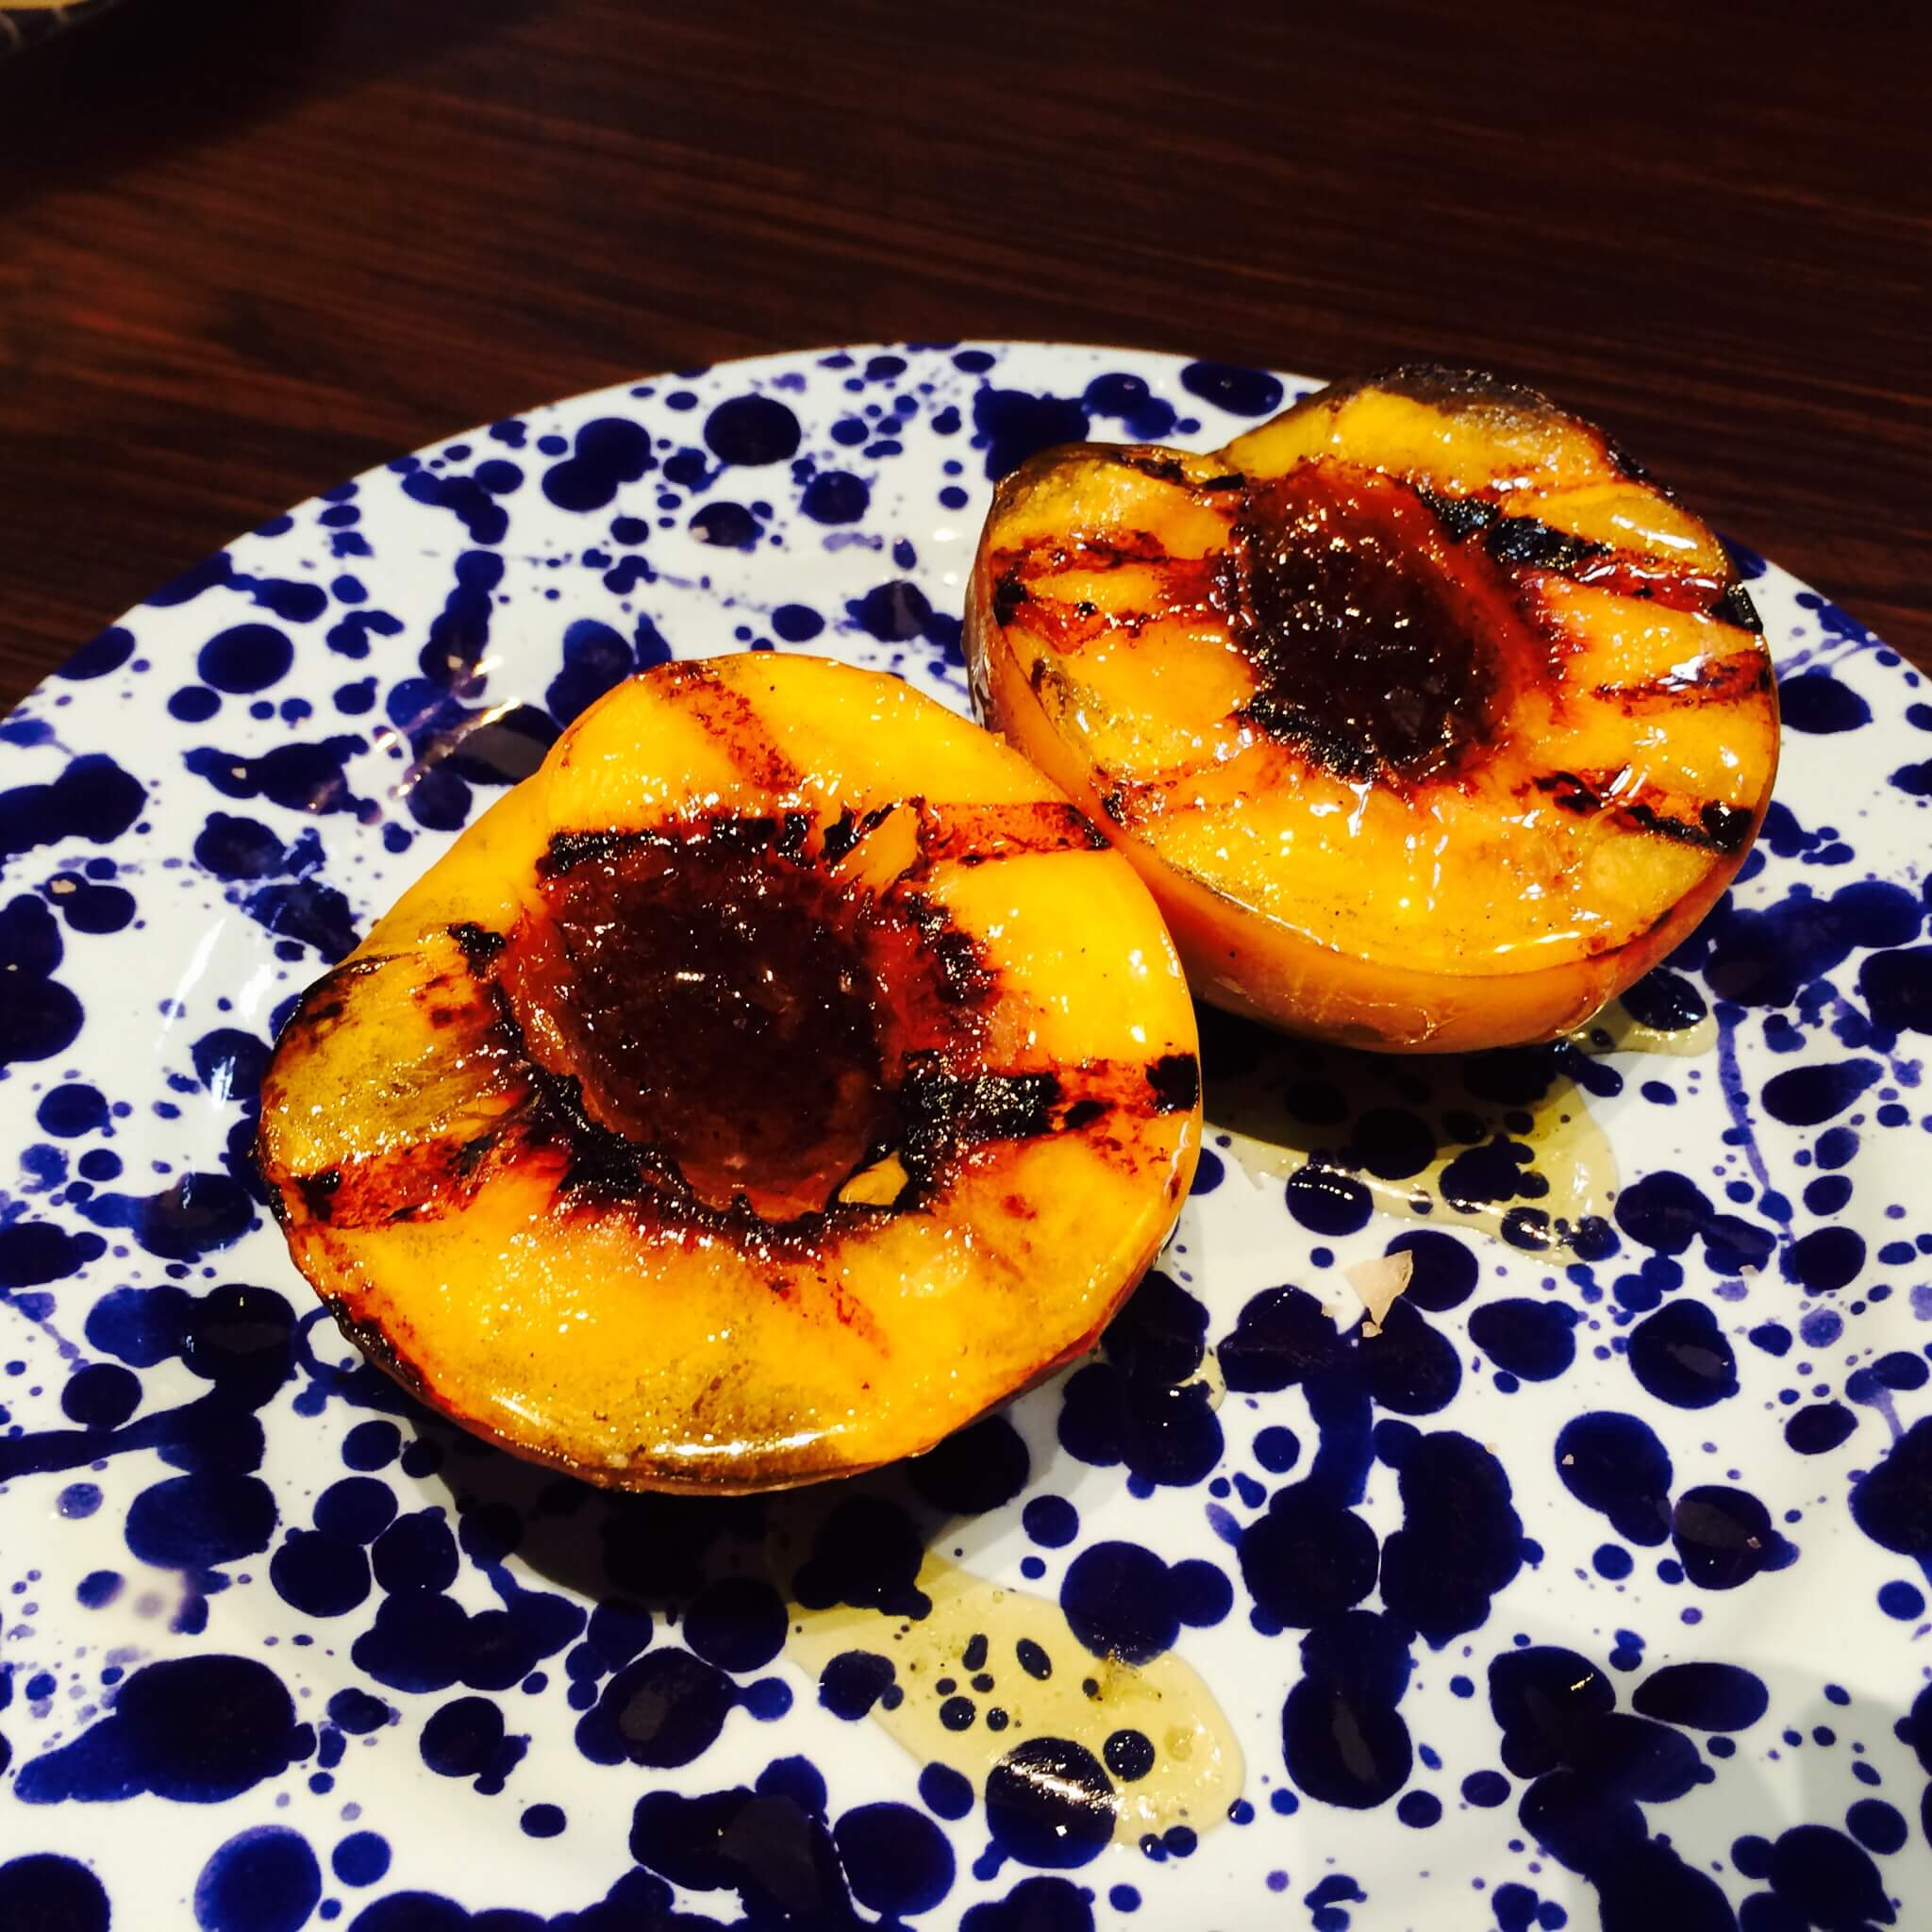 GRILLED FITZGERALD'S PEACH - With honey & smoked Maldon sea salt